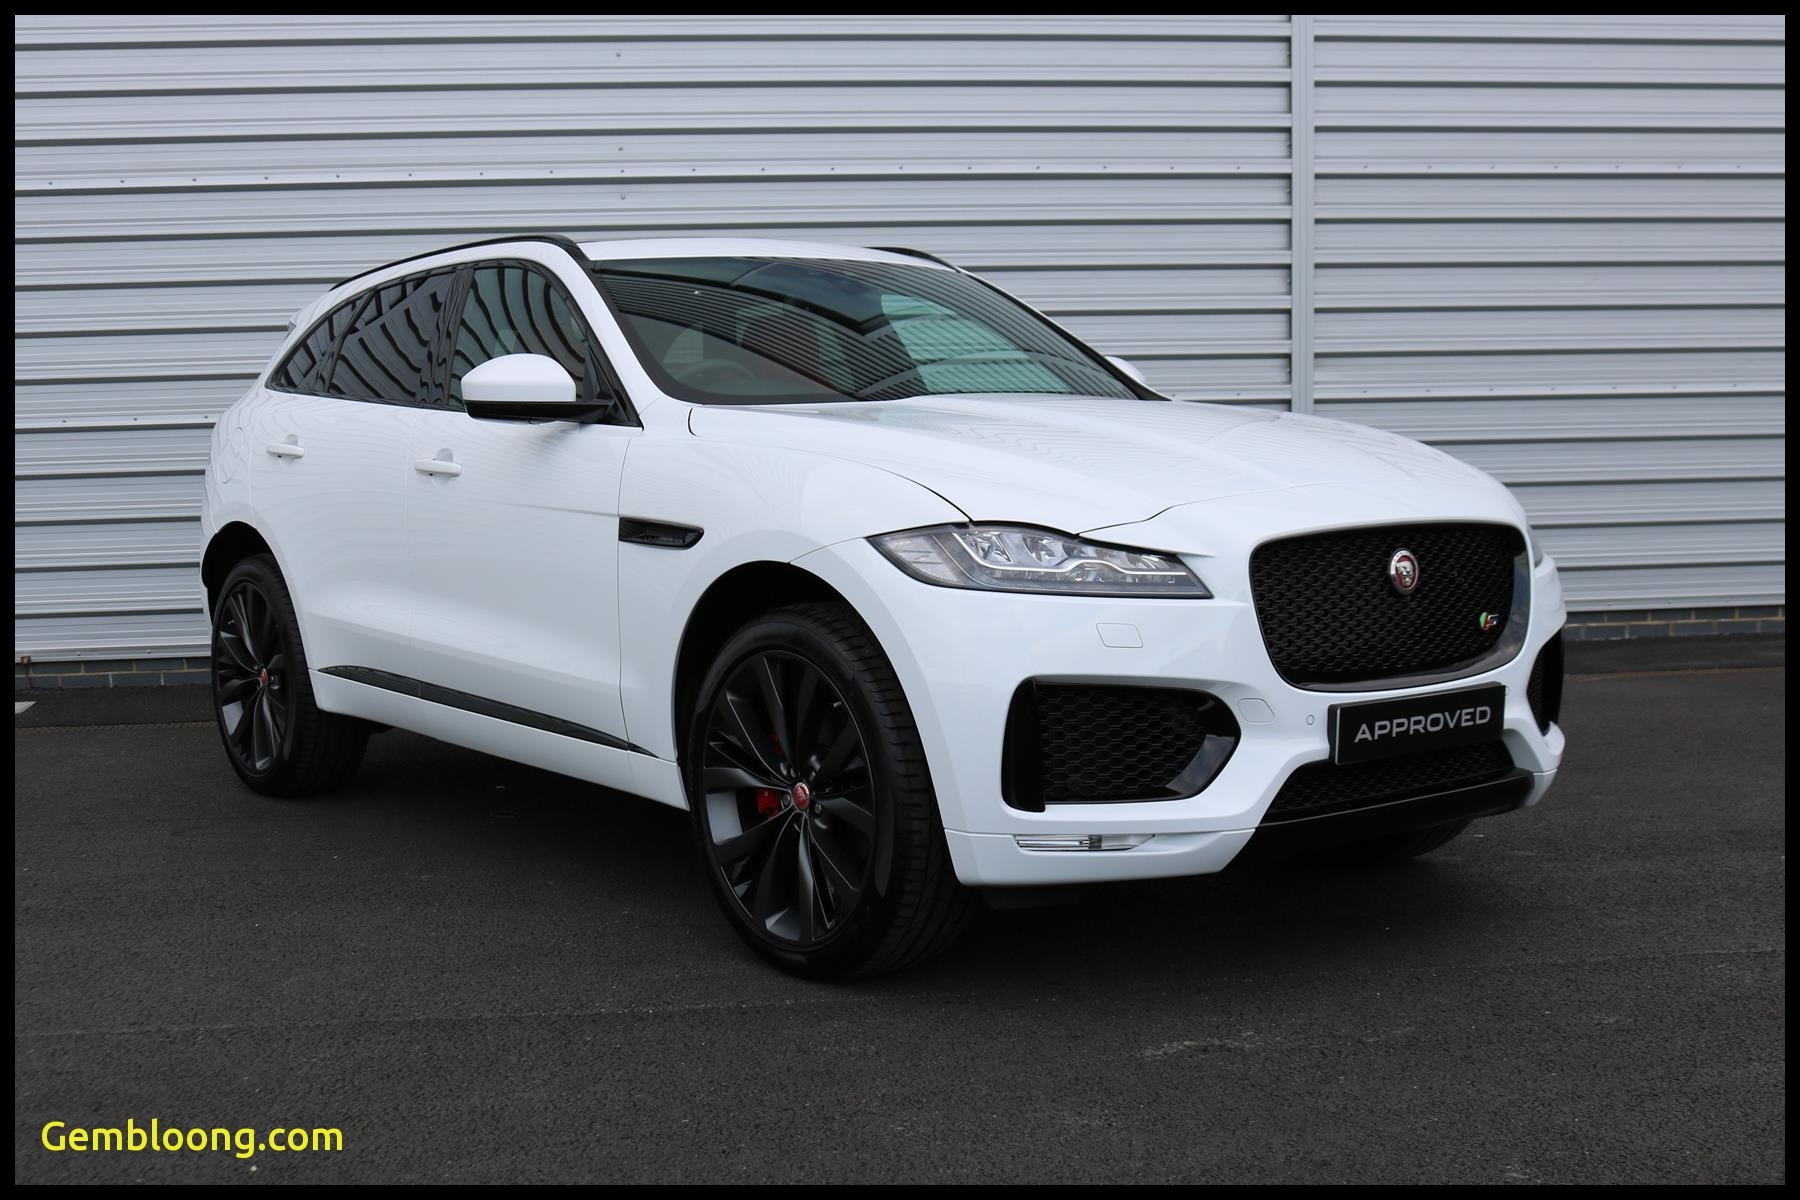 Best Used Car Site Luxury Used Cars Near Me Cheap Best Used 2018 Jaguar F Pace